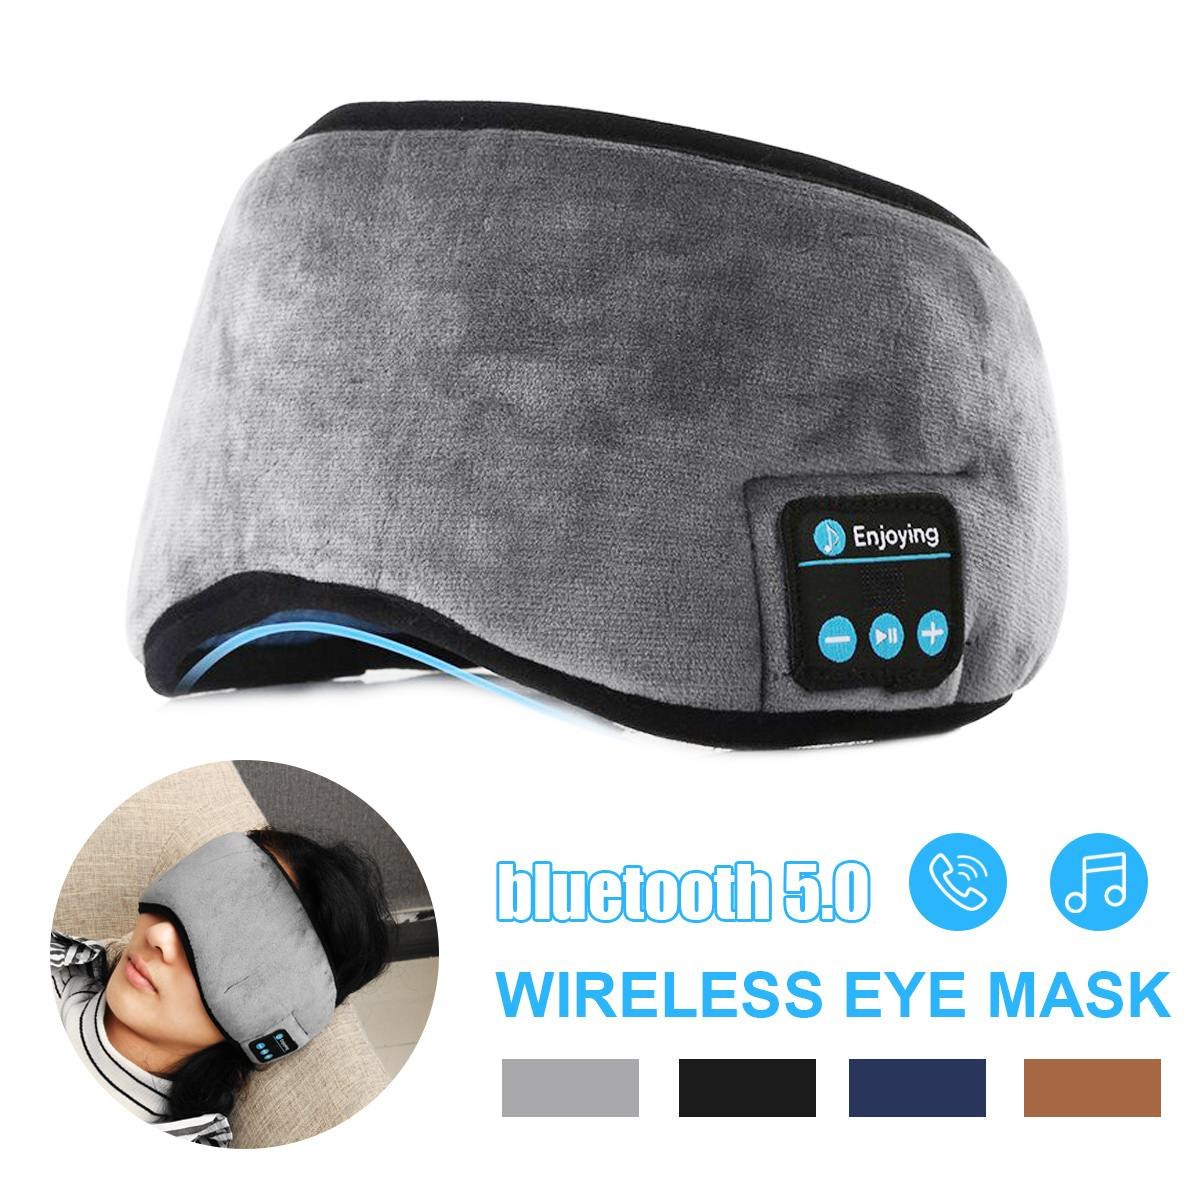 Wireless bluetooth Earphones Eye Mask bluetooth 5 0 Stereo Music Sleep Headset Travel Eye Shades with Built-in Speakers Mic